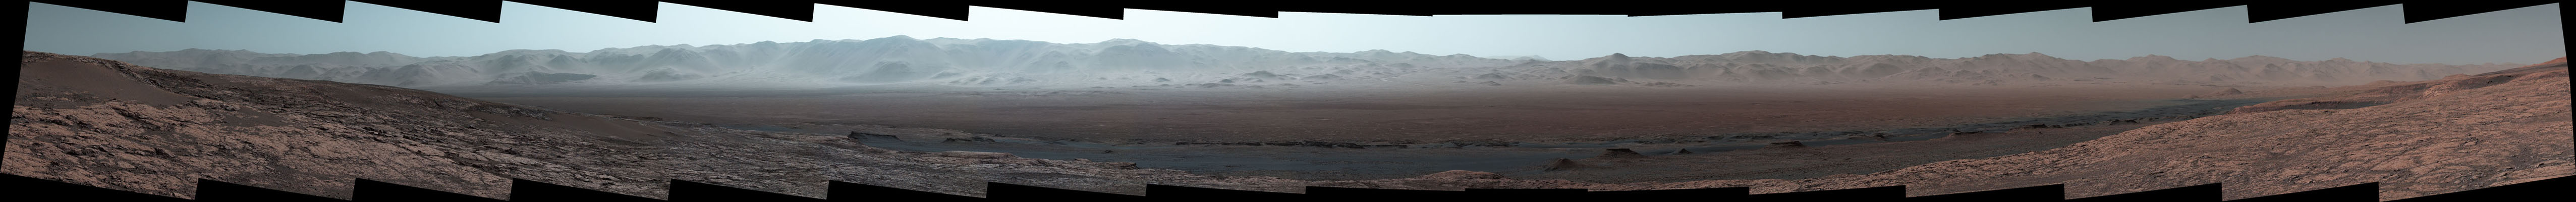 Wide-Angle Panorama from Ridge in Mars' Gale Crater